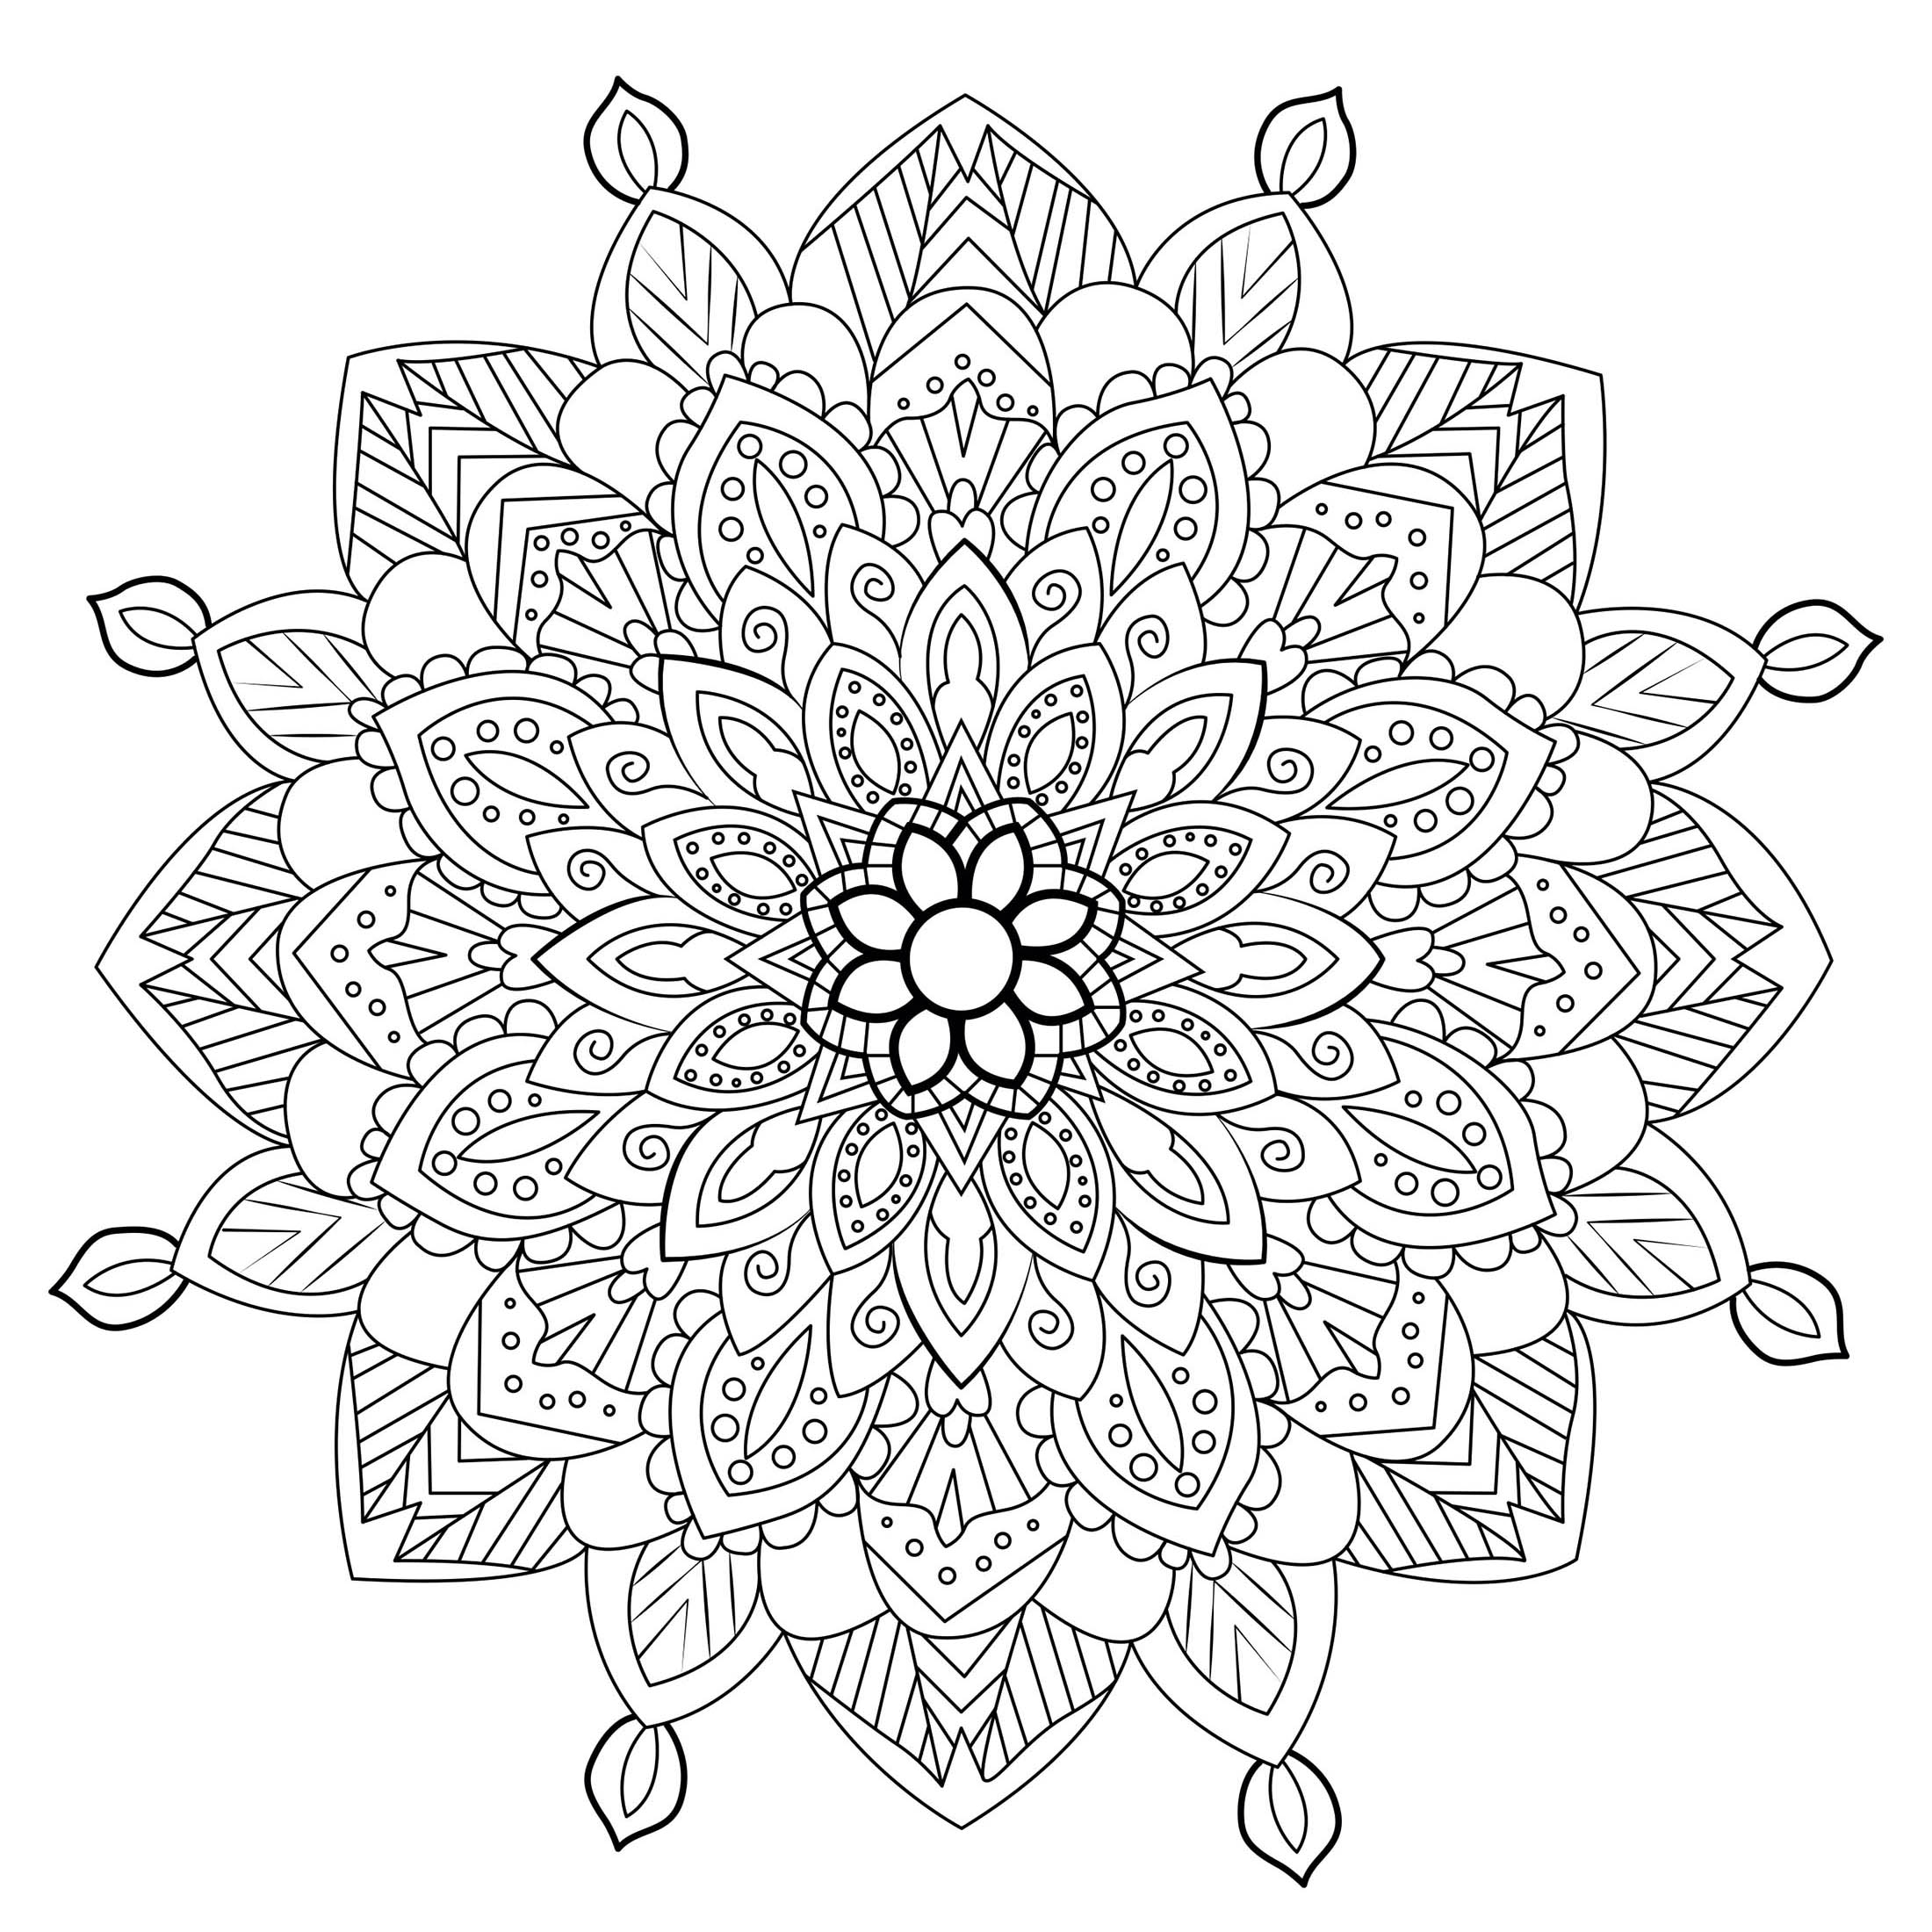 In this Mandala, the abstract shapes become vegetal ... Print it for free and color it ! You must clear your mind and allow yourself to forget all your worries and responsibilities.